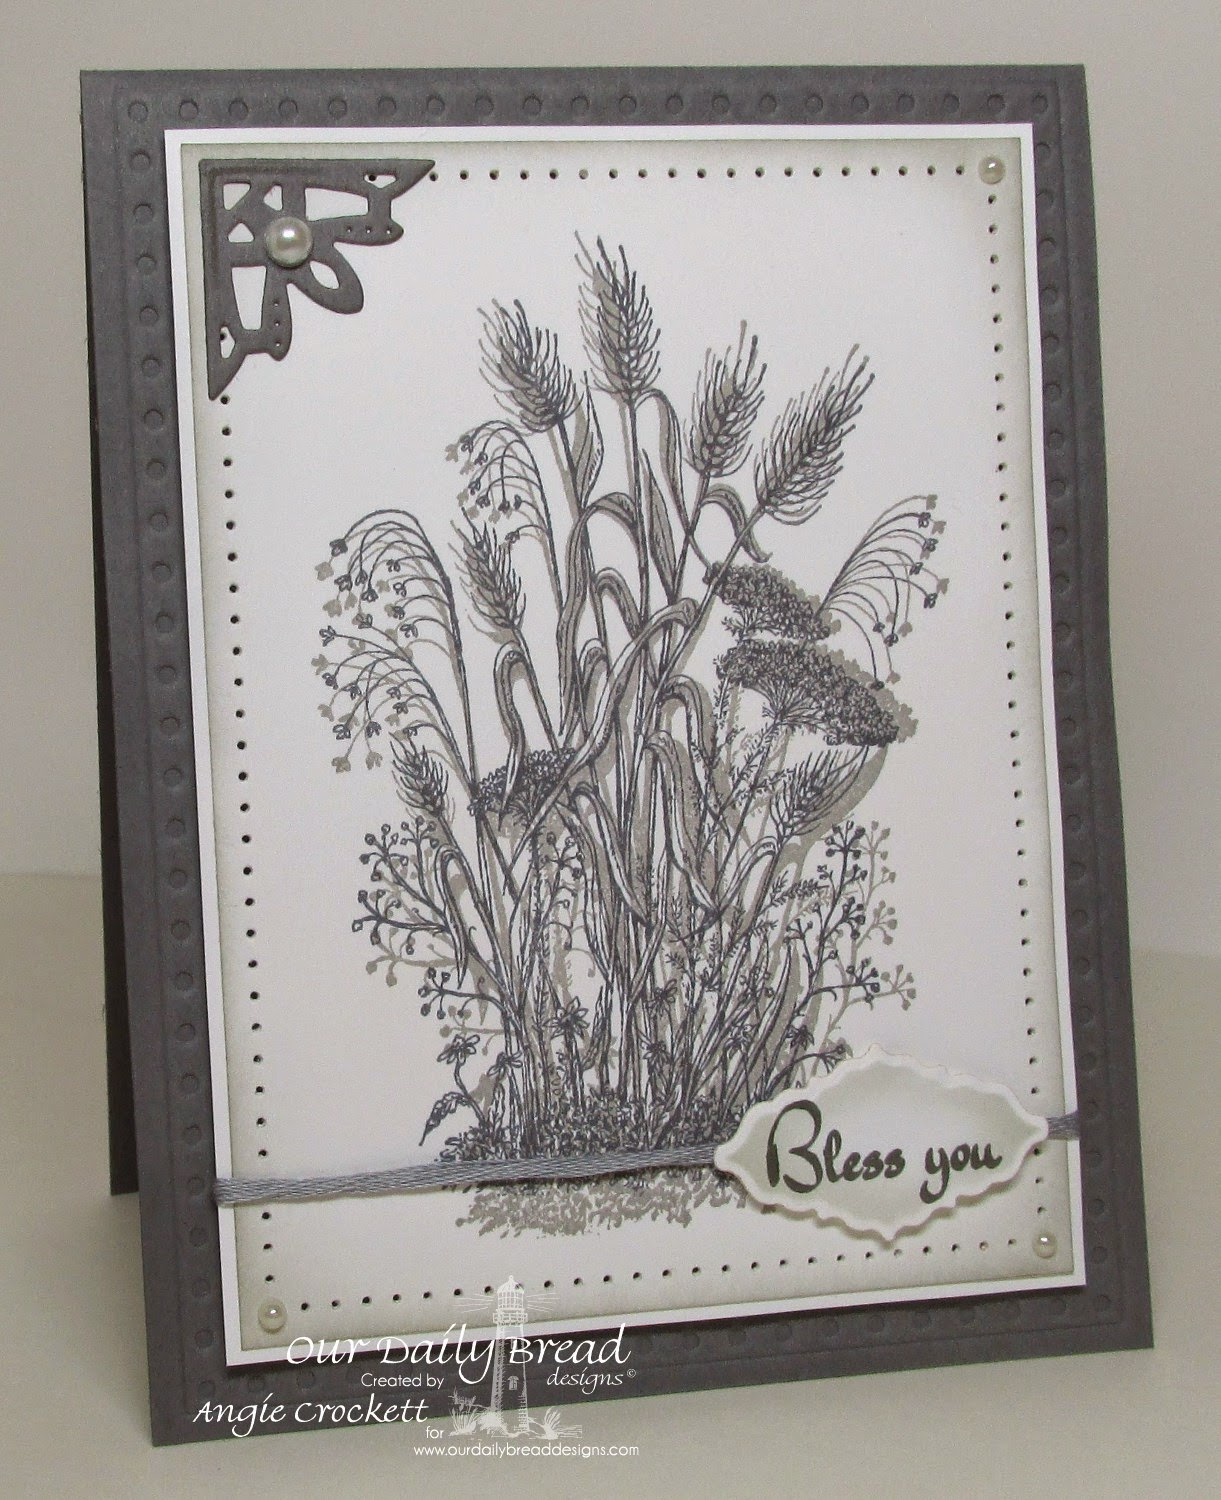 ODBD Miss You, ODBD Life is a Gift, ODBD Custom Faithful Fish Pattern Die and Debossing Plate, ODBD Custom Ornate Borders and Flower Dies, Card Designer Angie Crockett